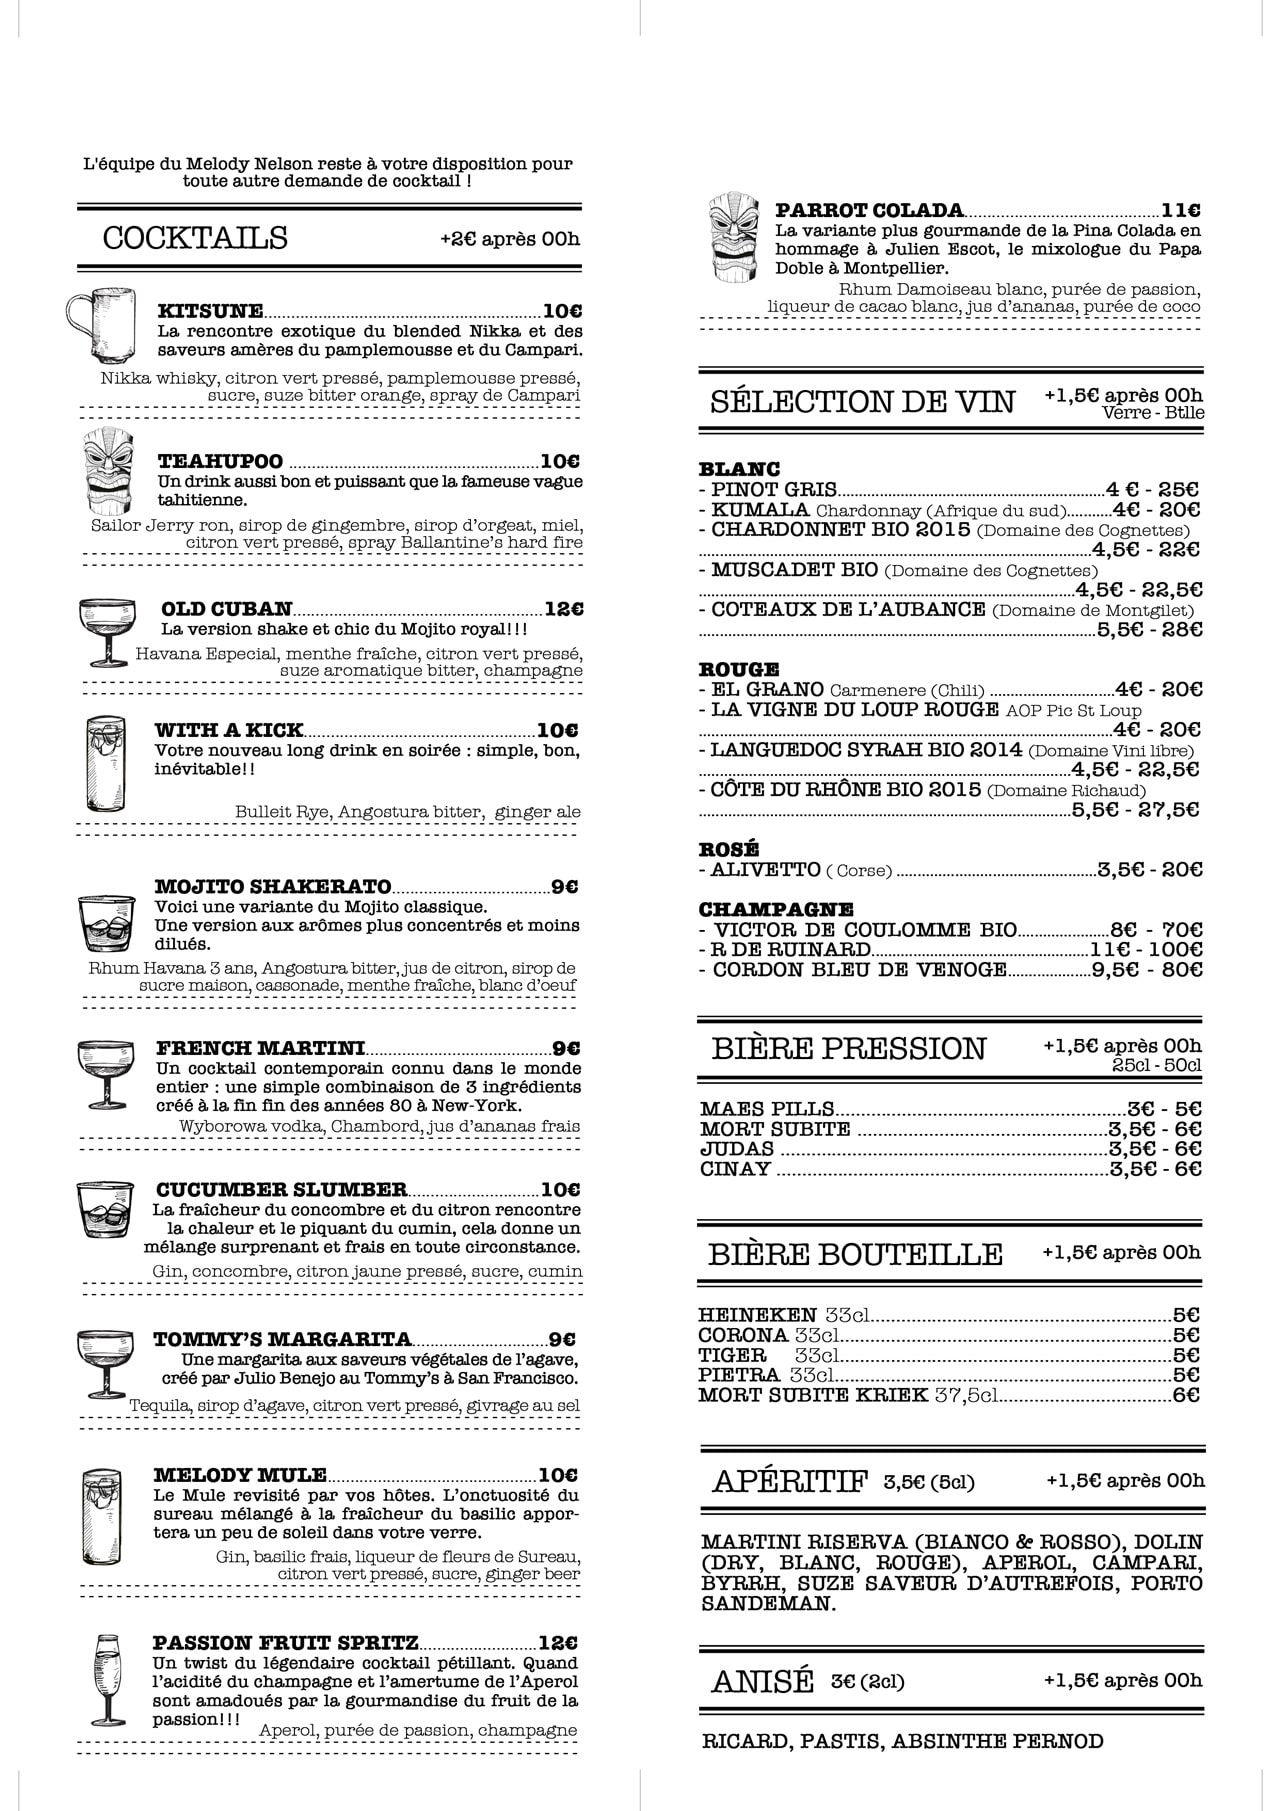 Carte de notre bar à cocktail à Rennes